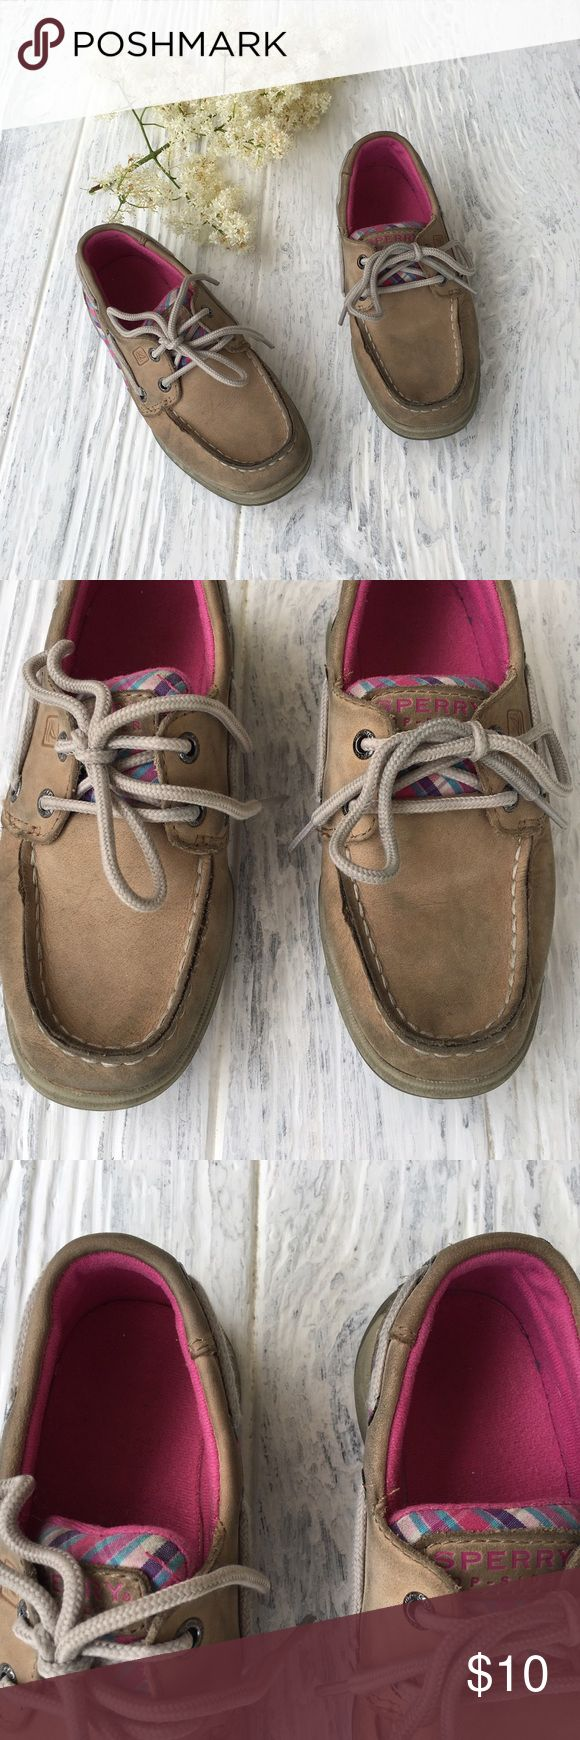 Girls Sperry Girls Sperry size 12.5.  These shoes are well loved, but still have some life left in them! Very cute tan color to match with anything. From a smoke and pet free home! Bundle and save! Sperry Shoes